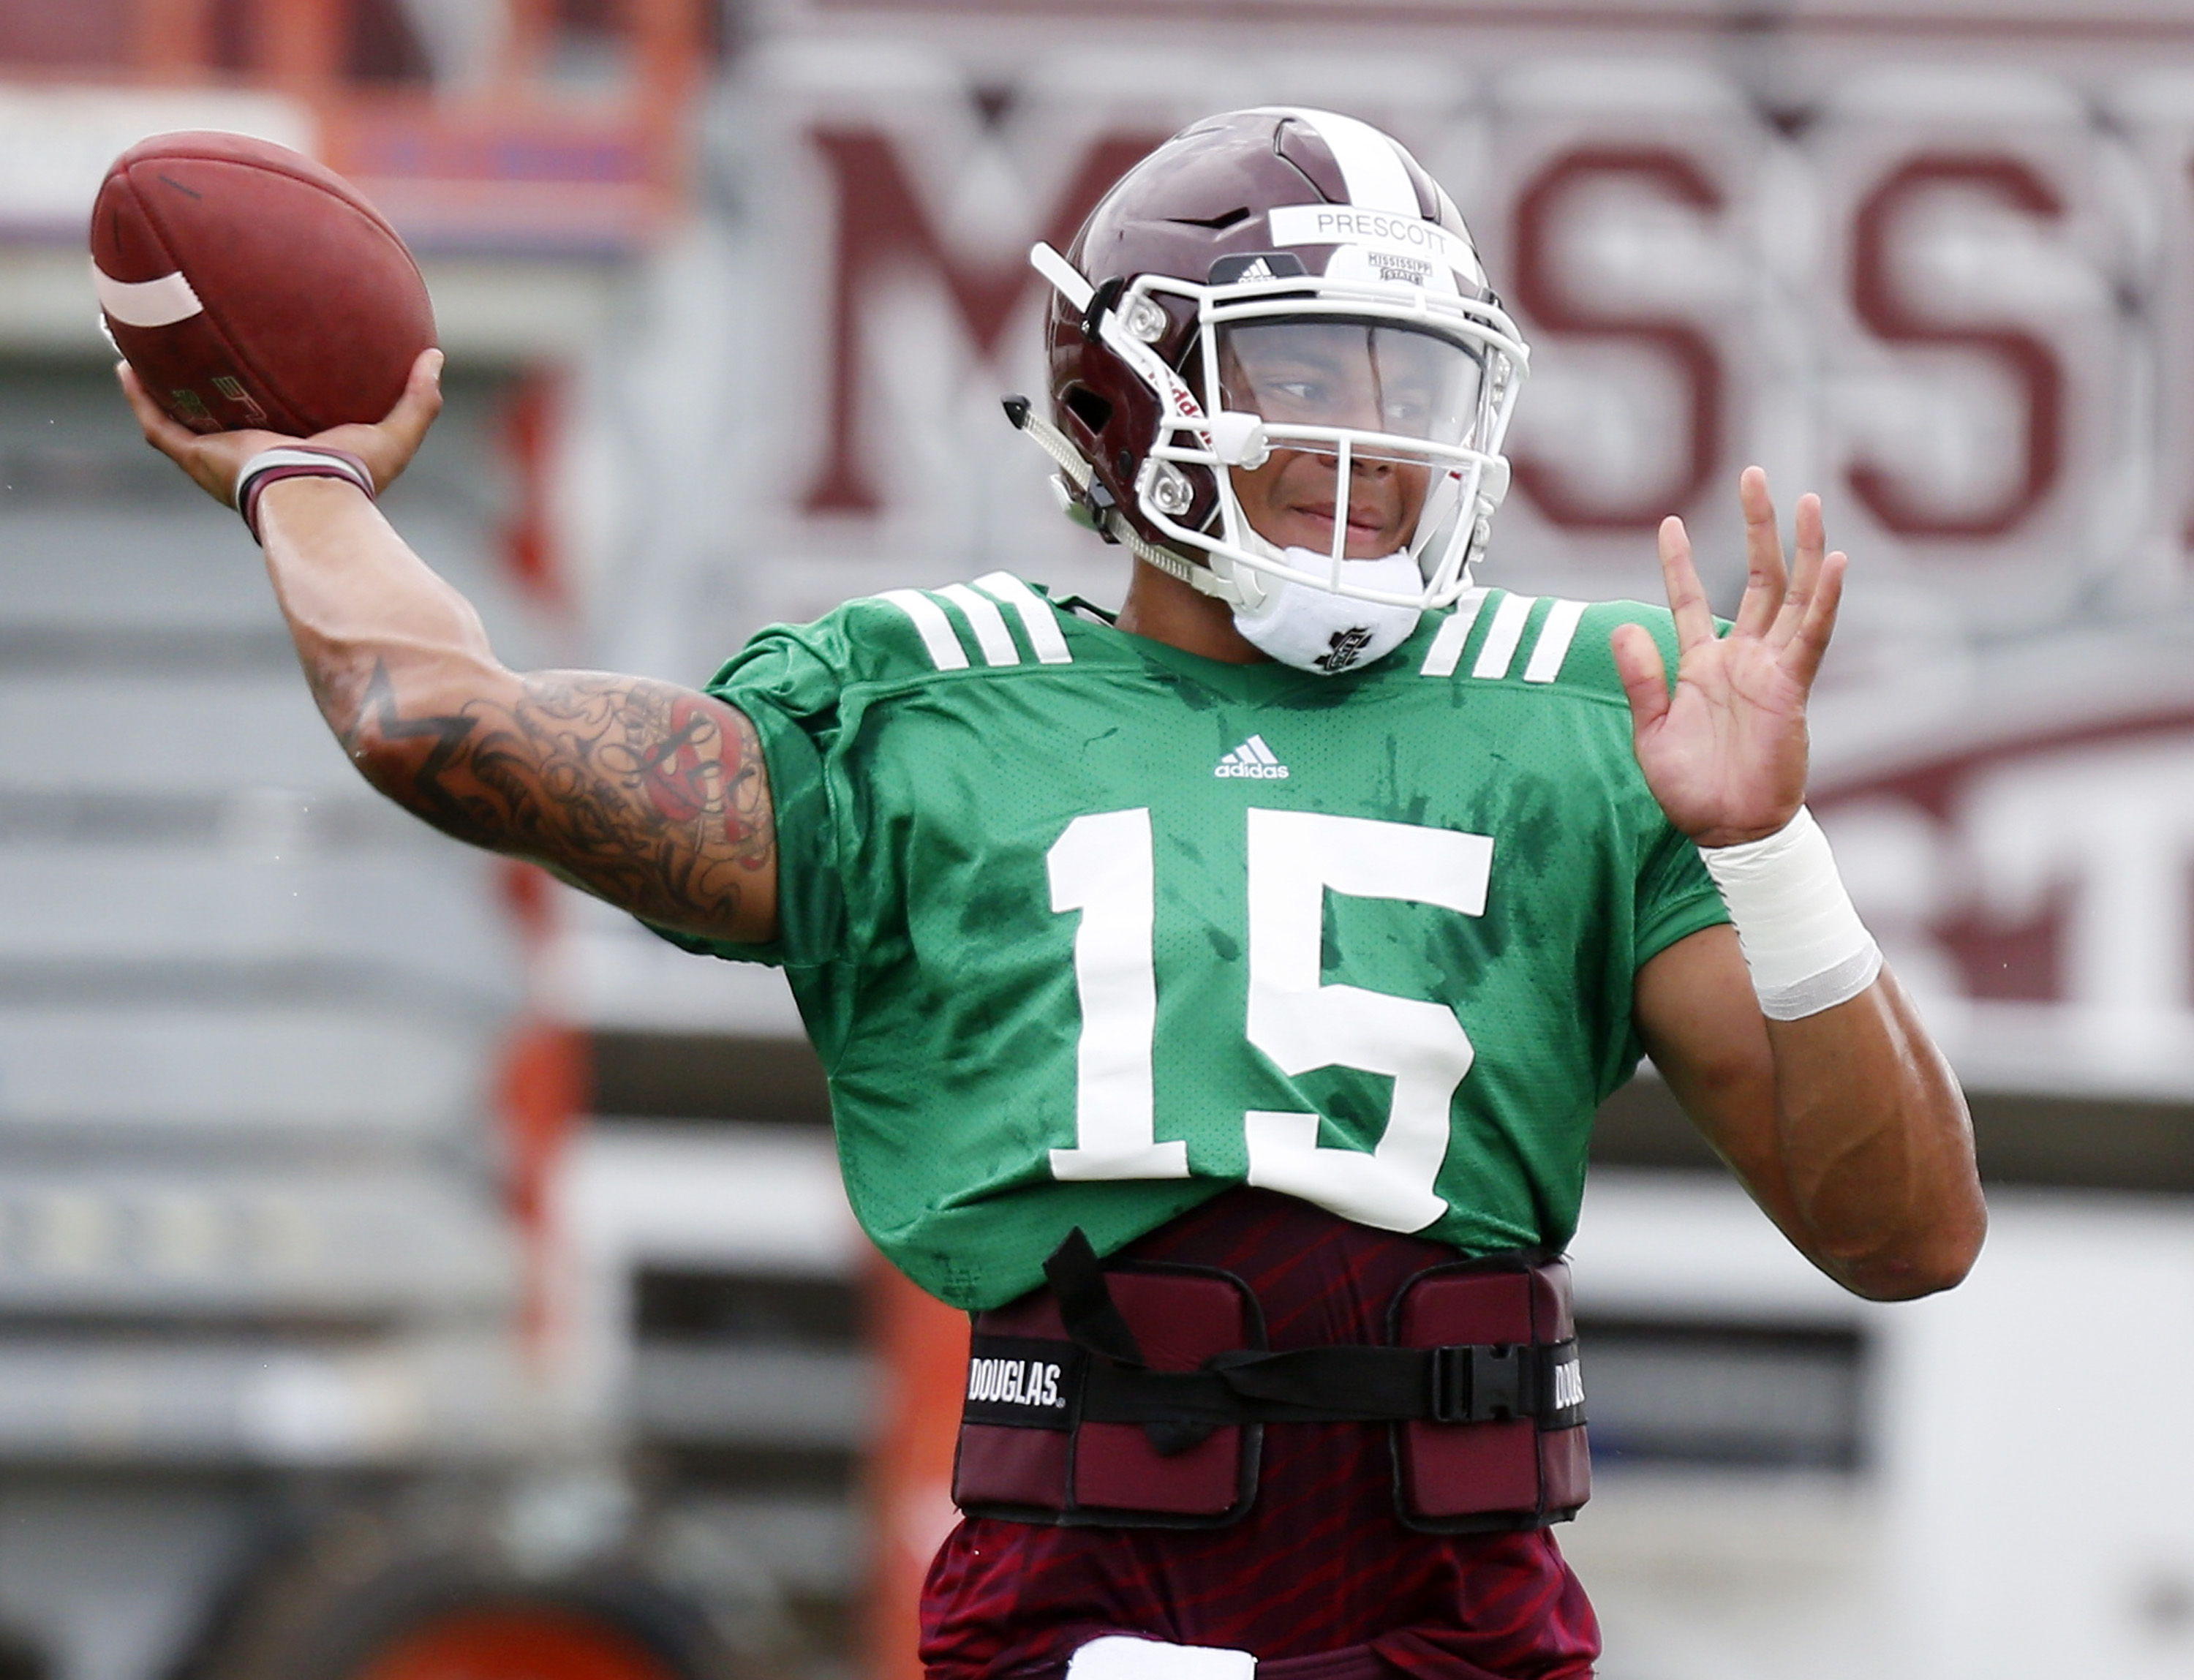 Mississippi State quarterback Dak Prescott passes during drills at NCAA college football practice in Starkville, Miss., Friday, Aug. 7, 2015. (AP Photo/Rogelio V. Solis)